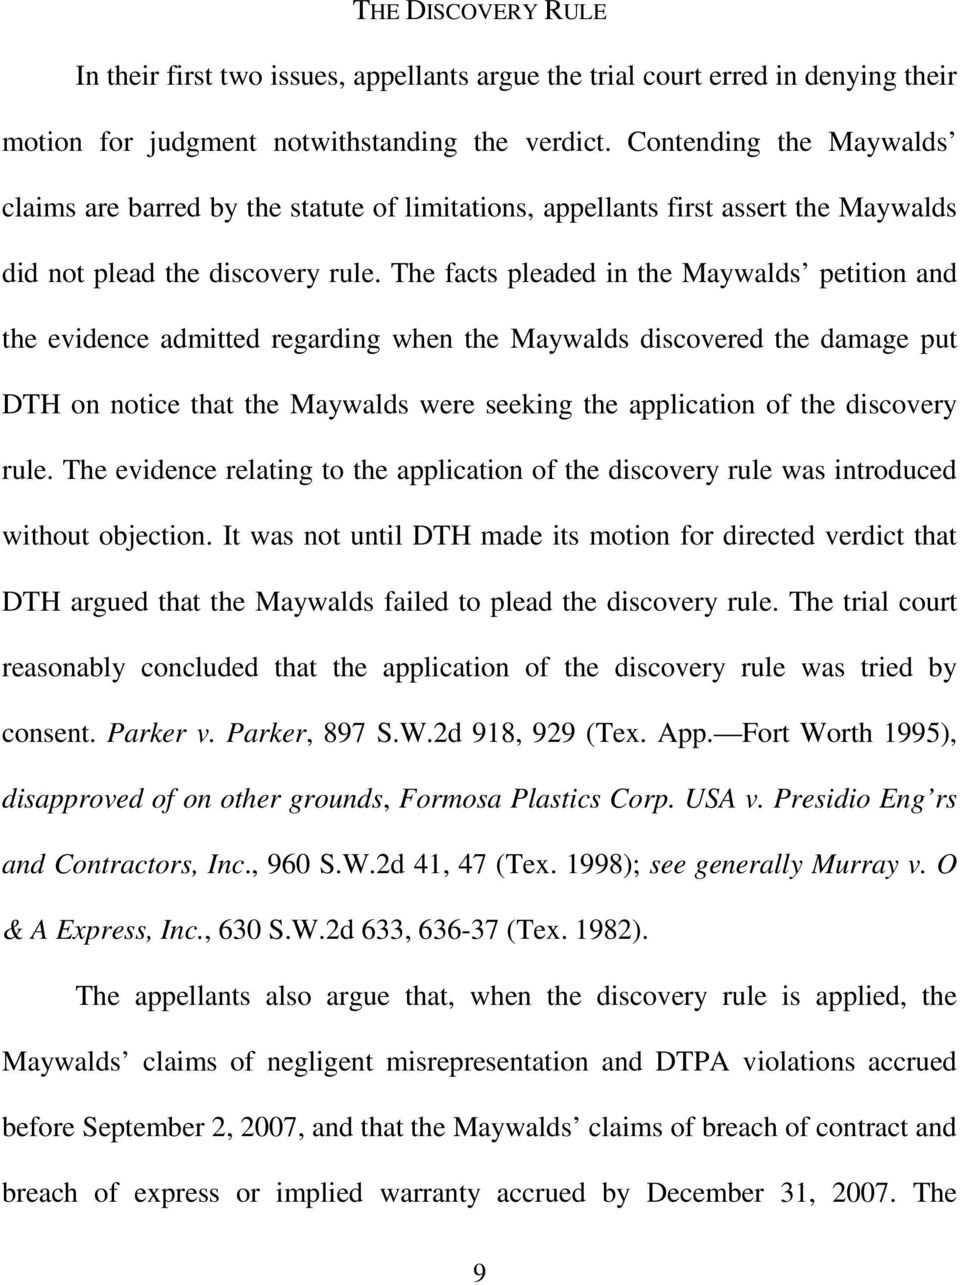 The facts pleaded in the Maywalds petition and the evidence admitted regarding when the Maywalds discovered the damage put DTH on notice that the Maywalds were seeking the application of the